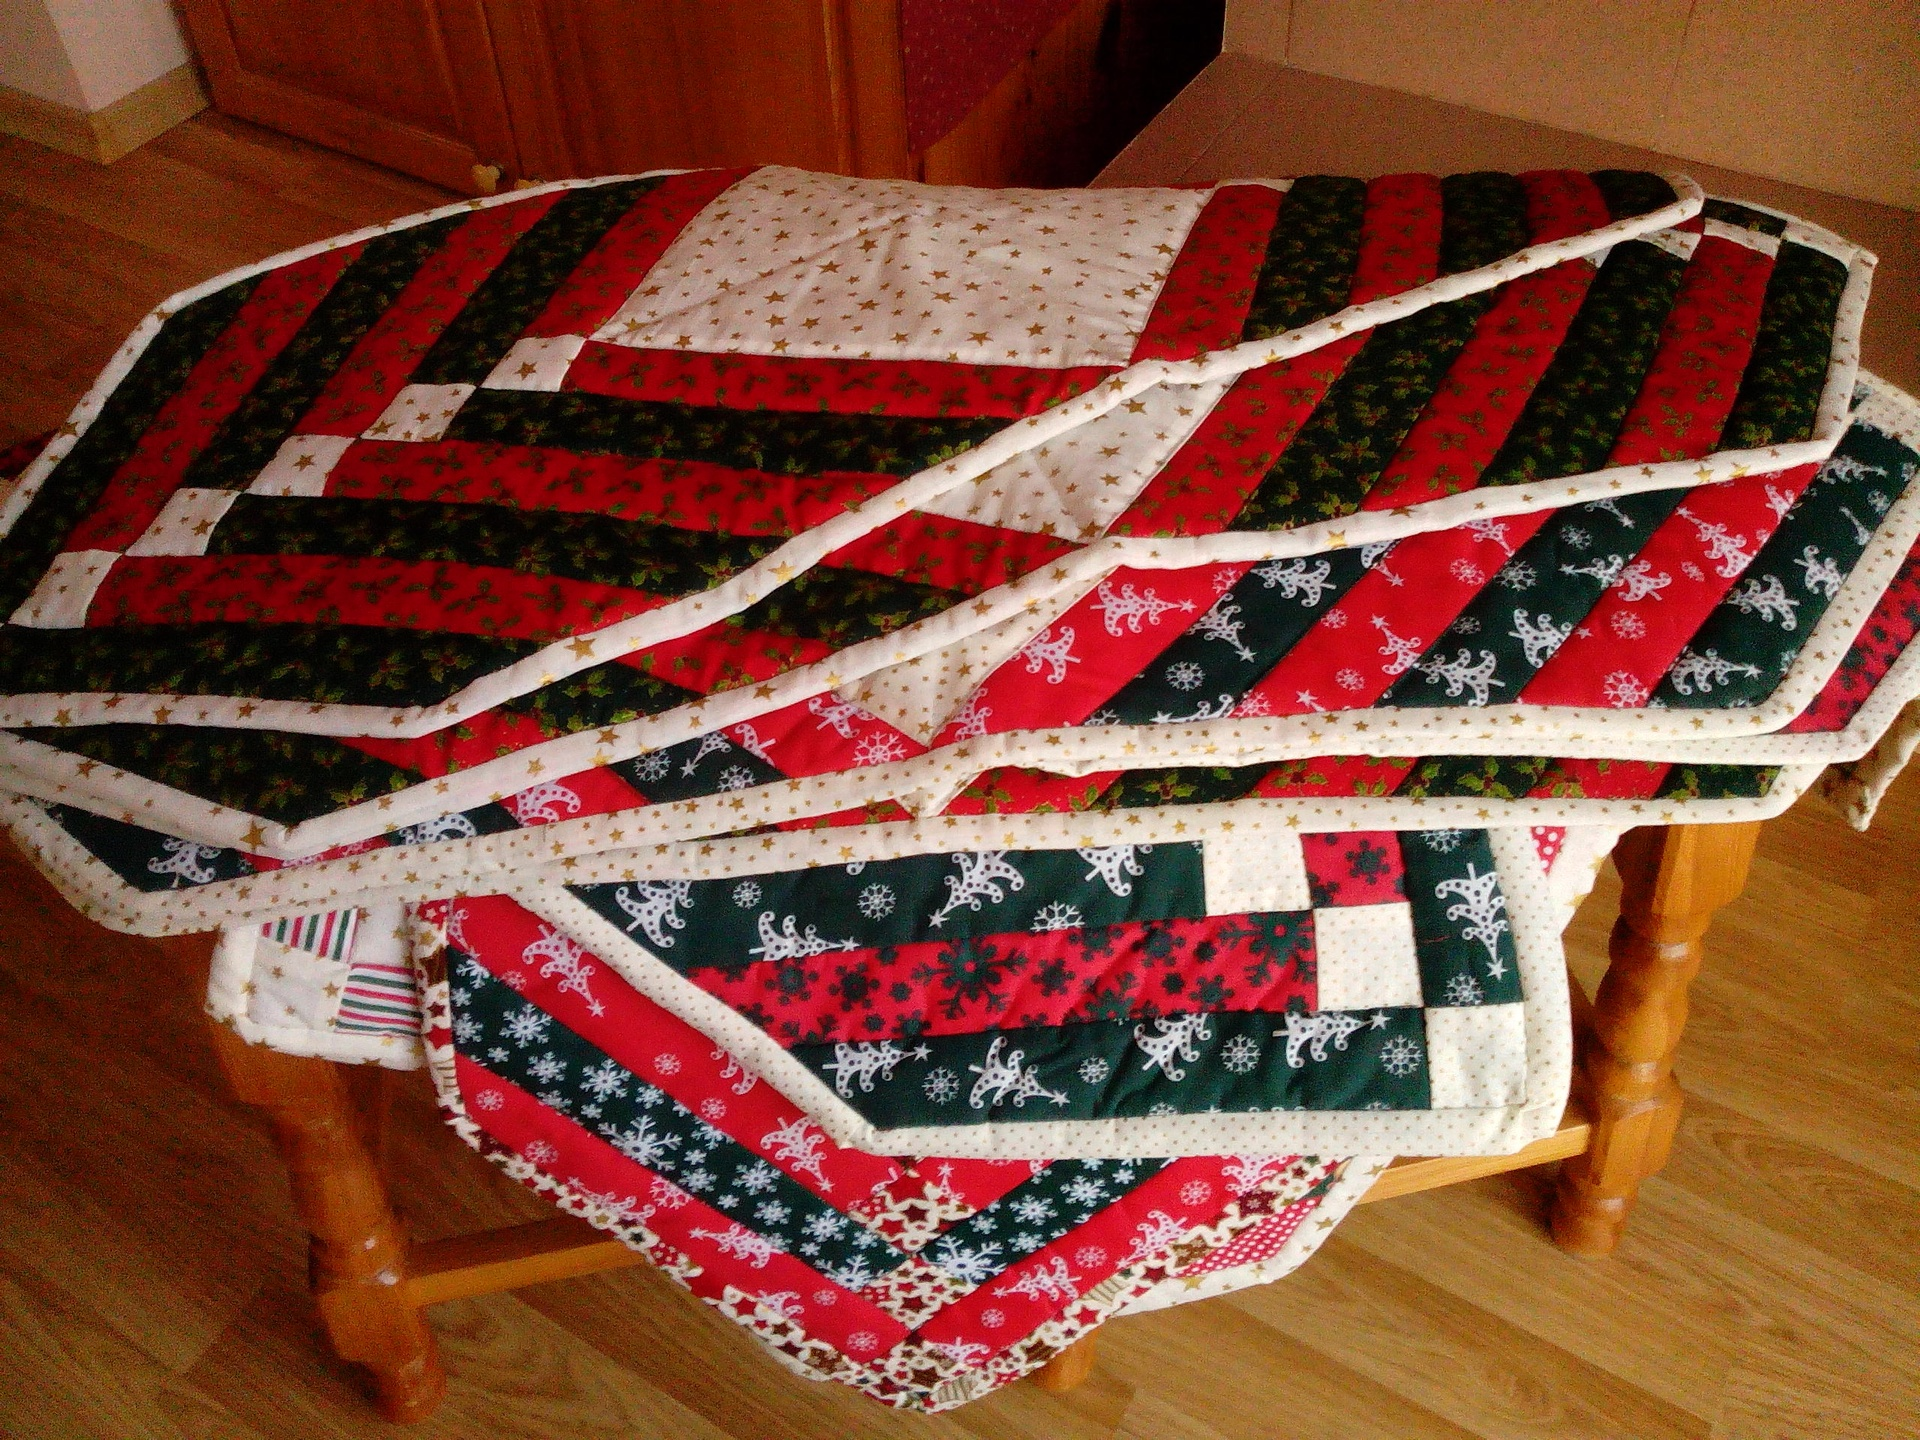 TABLE RUNNERS £12.50 each